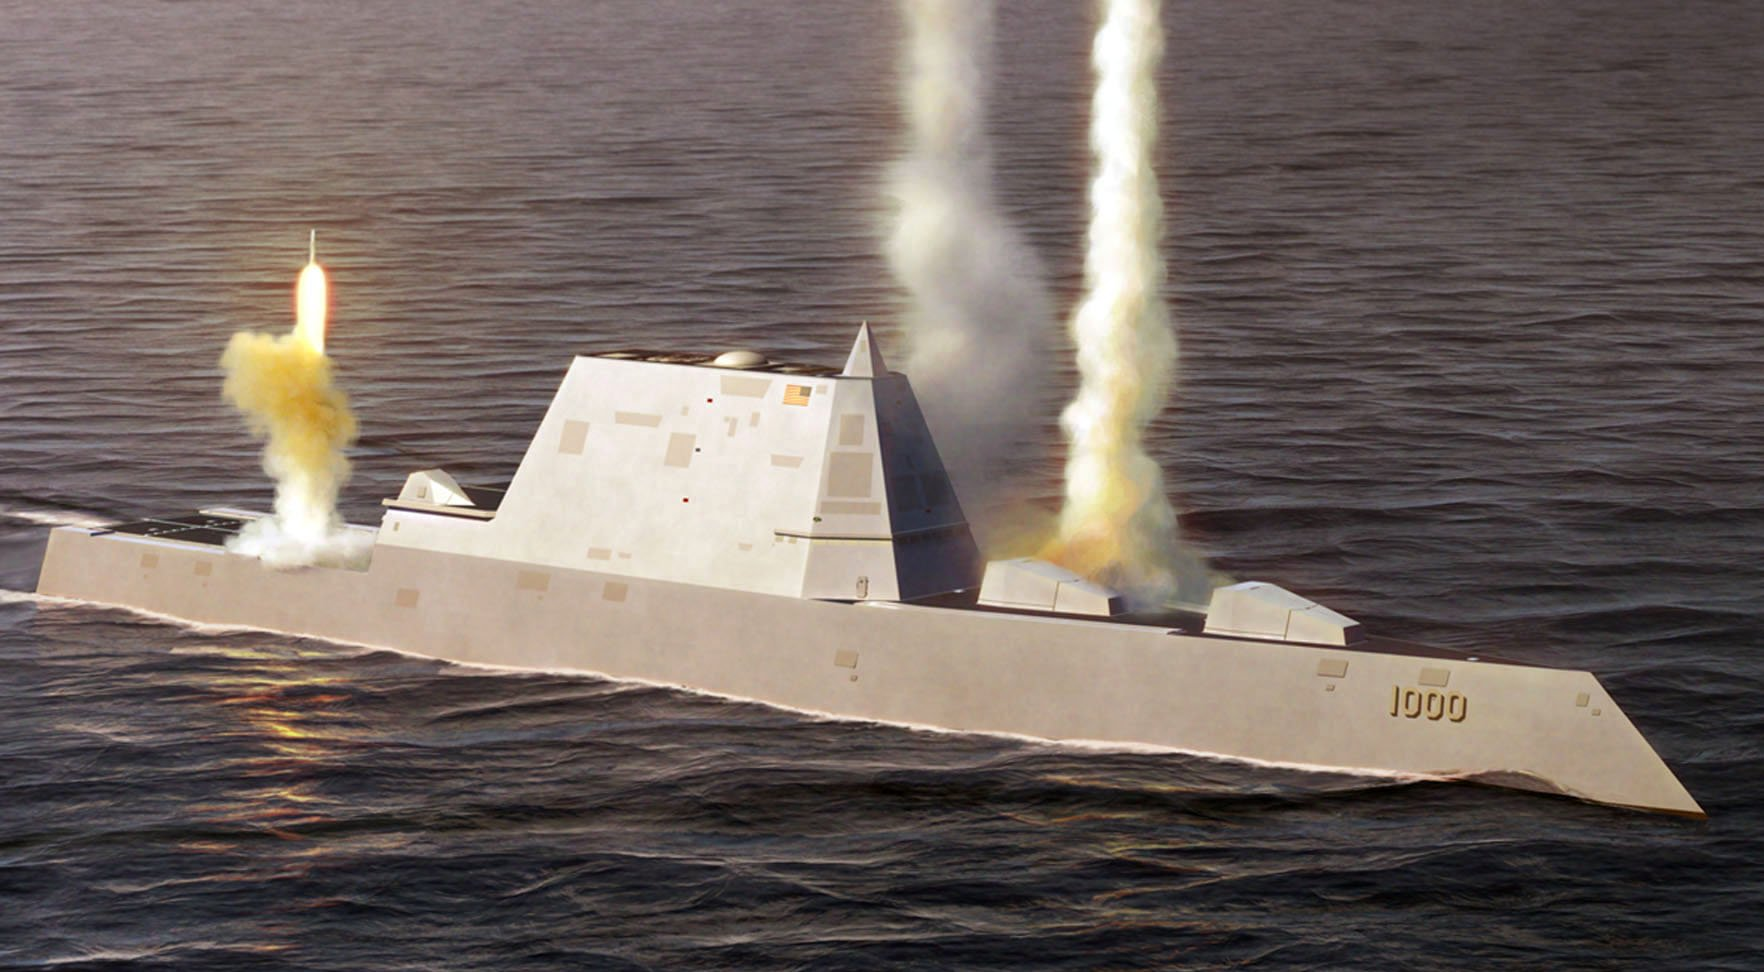 An artists rendering of Zumwalt's original design prior to the Nunn-McCurdy restructure showing the original sensor configuration on the deckhouse.